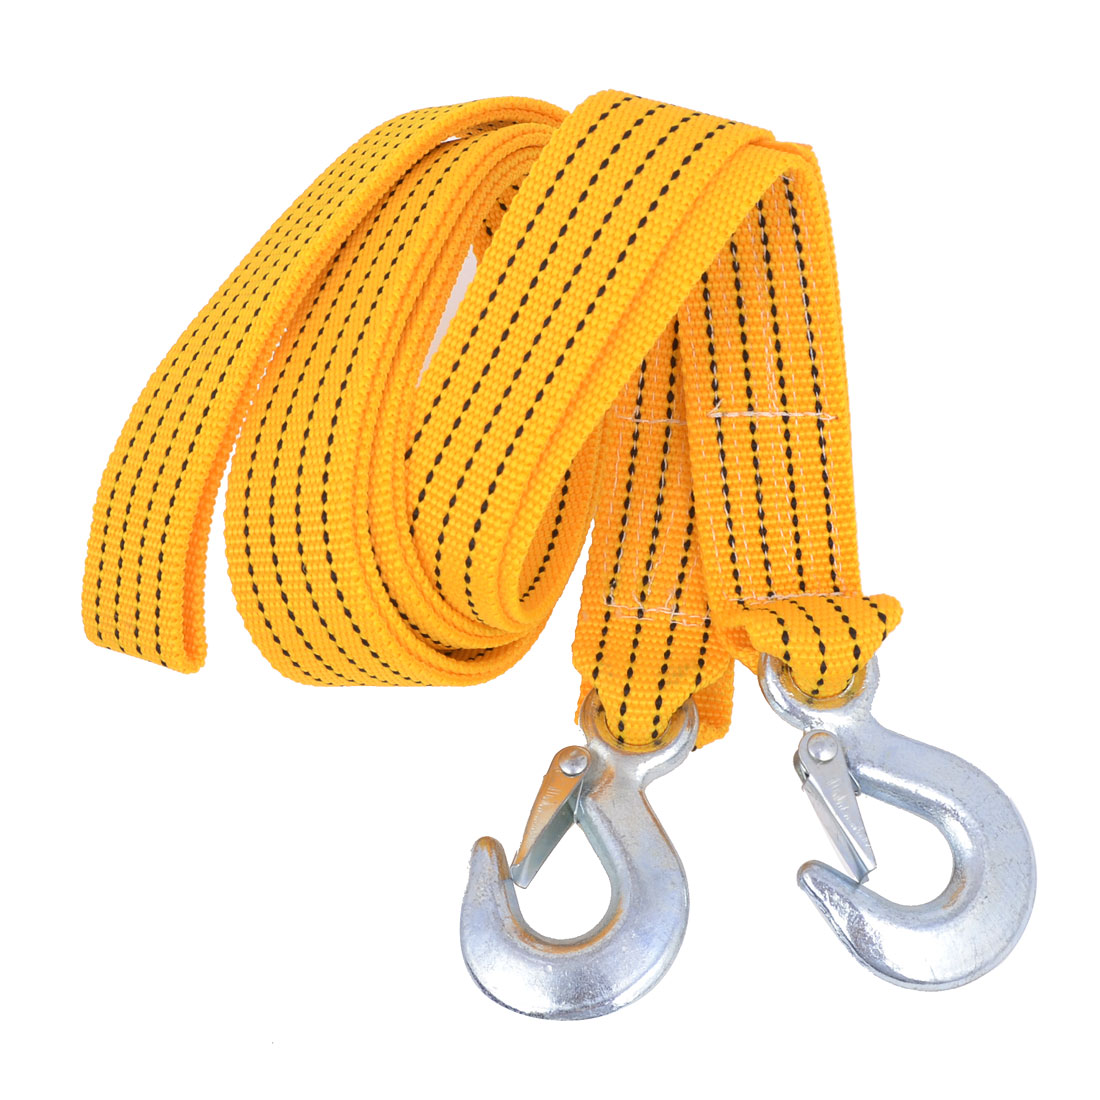 3.5 Meters Long Car Truck Breakdown Recovery Tow Strap Yellow